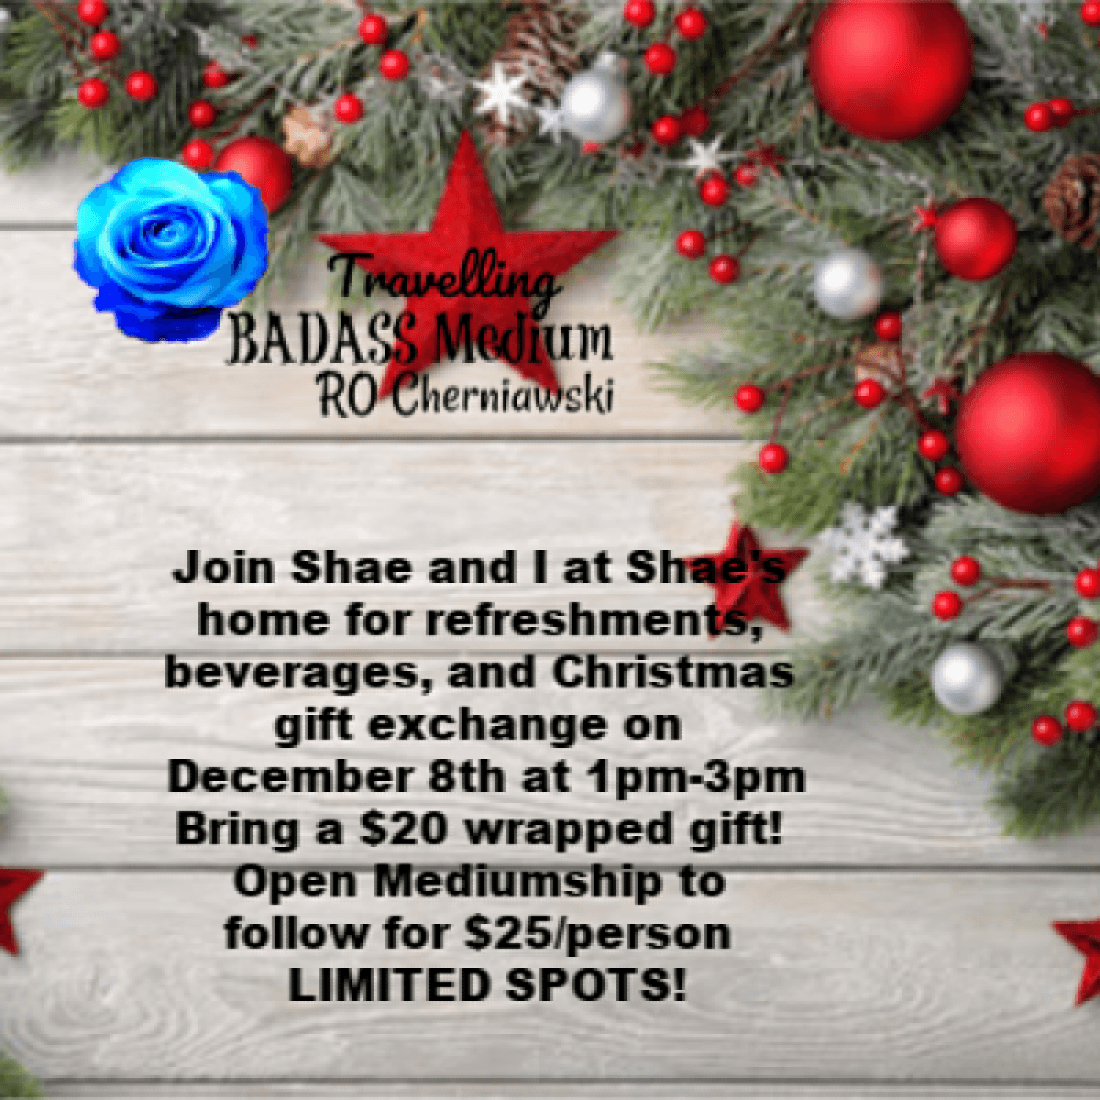 Christmas Gift Exchange and Open Mediumship with Shae and Ro